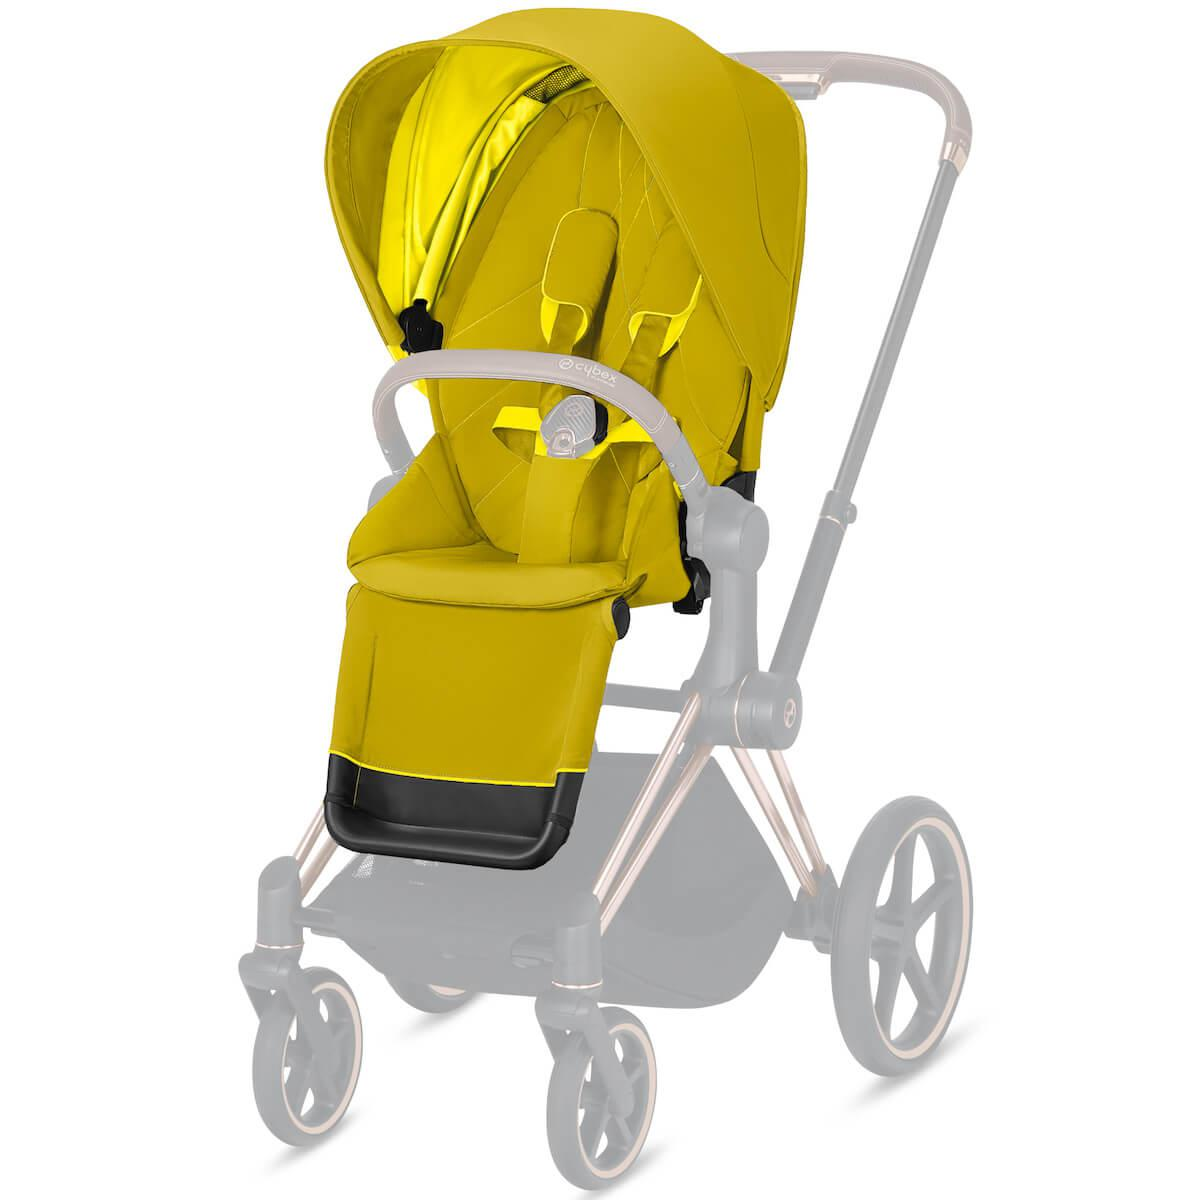 Asiento-pack silla PRIAM Cybex Mustard yellow-yellow